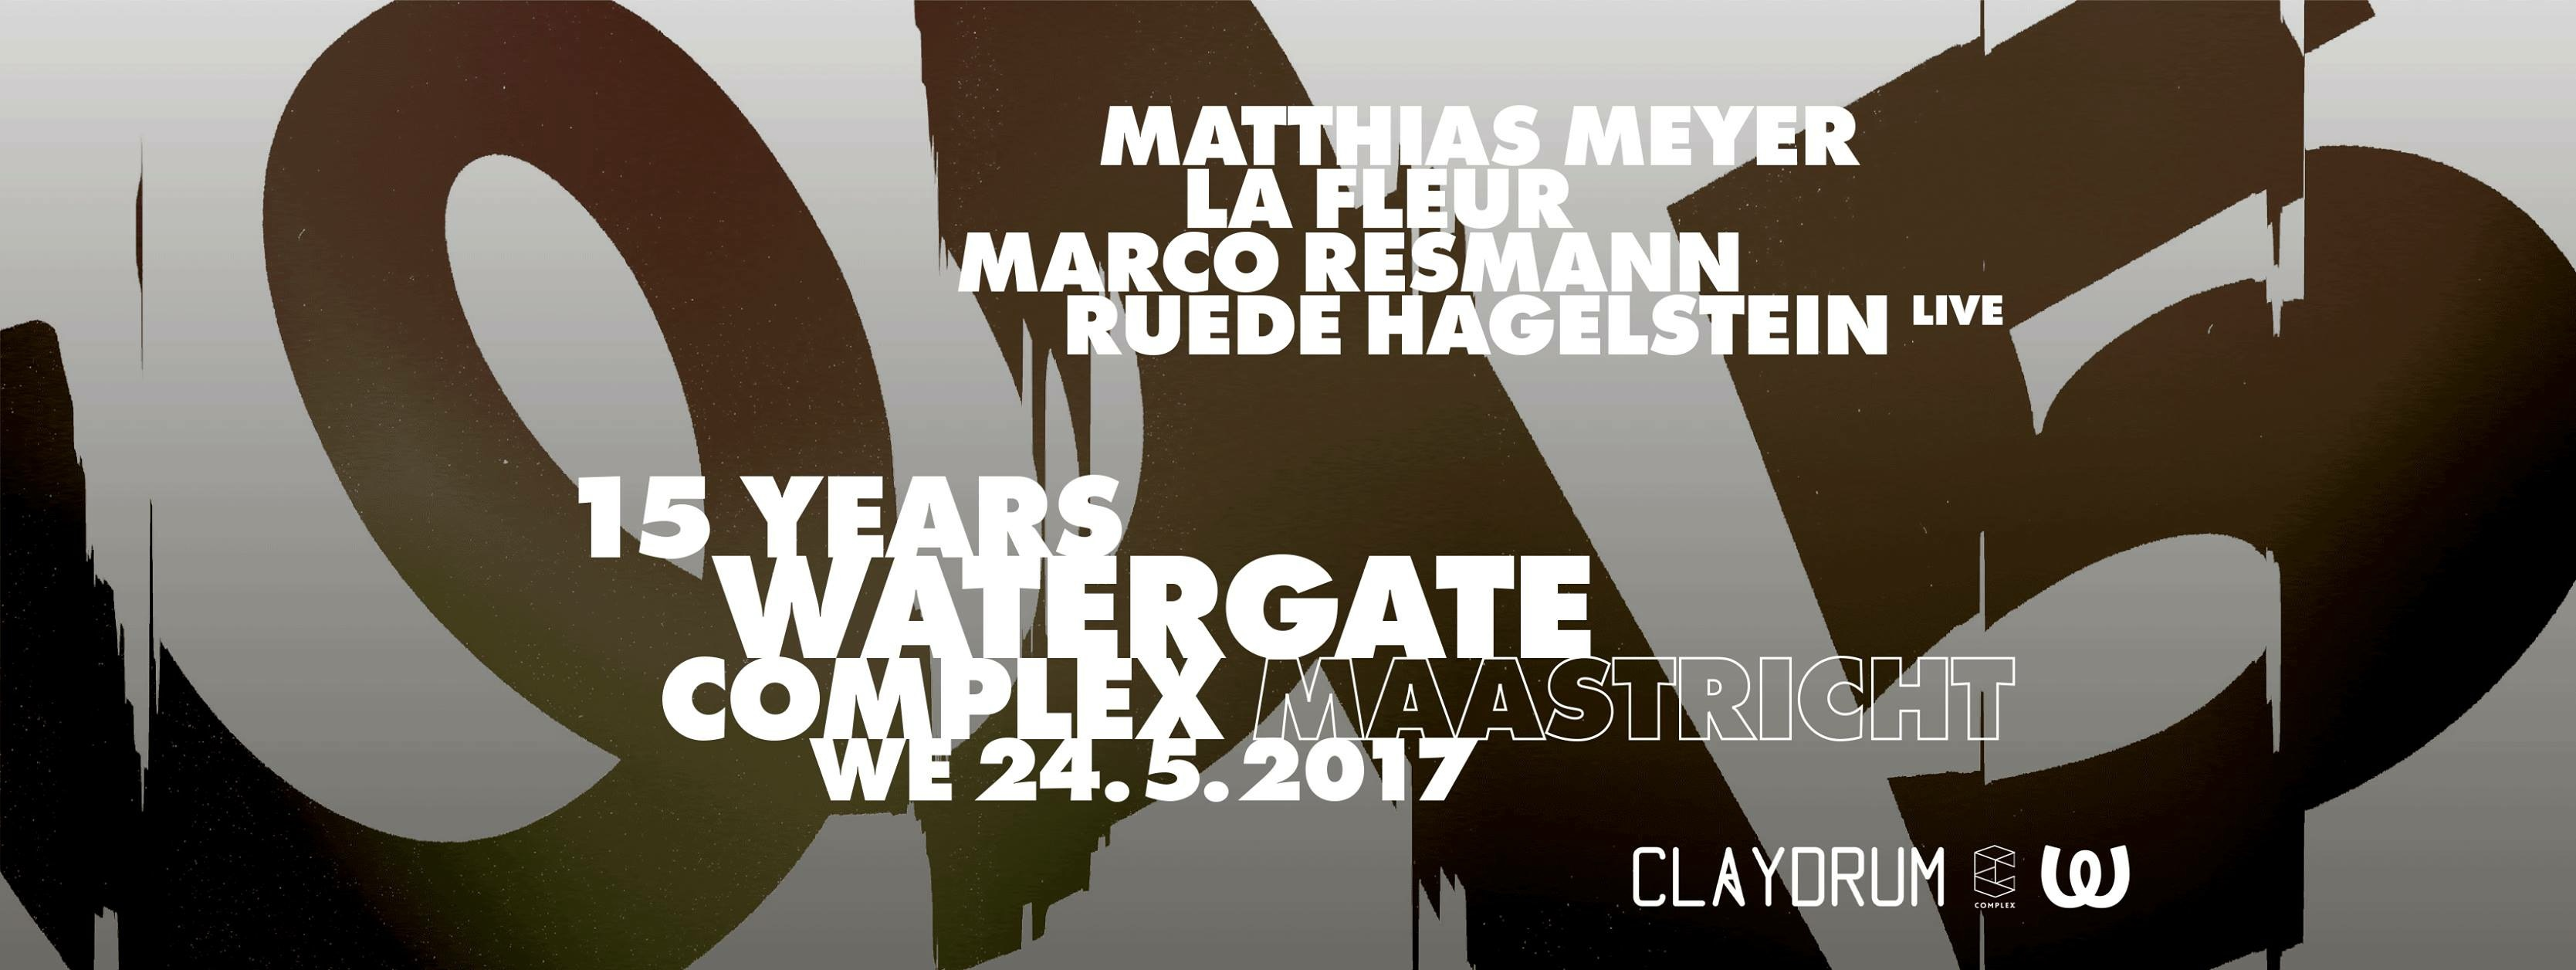 15 Years Watergate Berlin